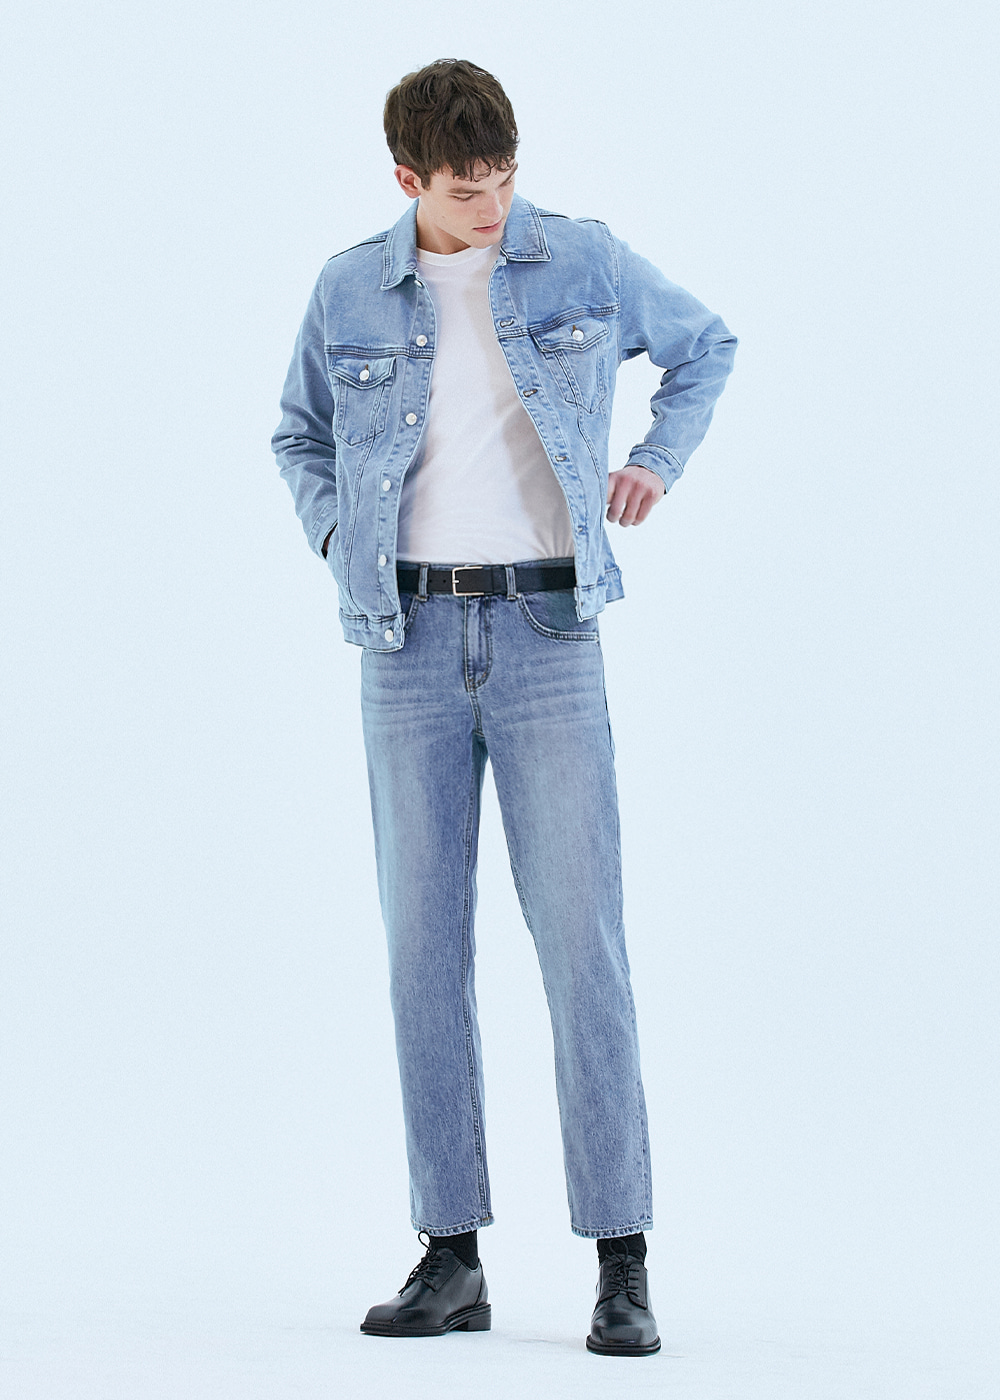 062 TAPERED FIT URBAN CREW JEANS PALE BLUE